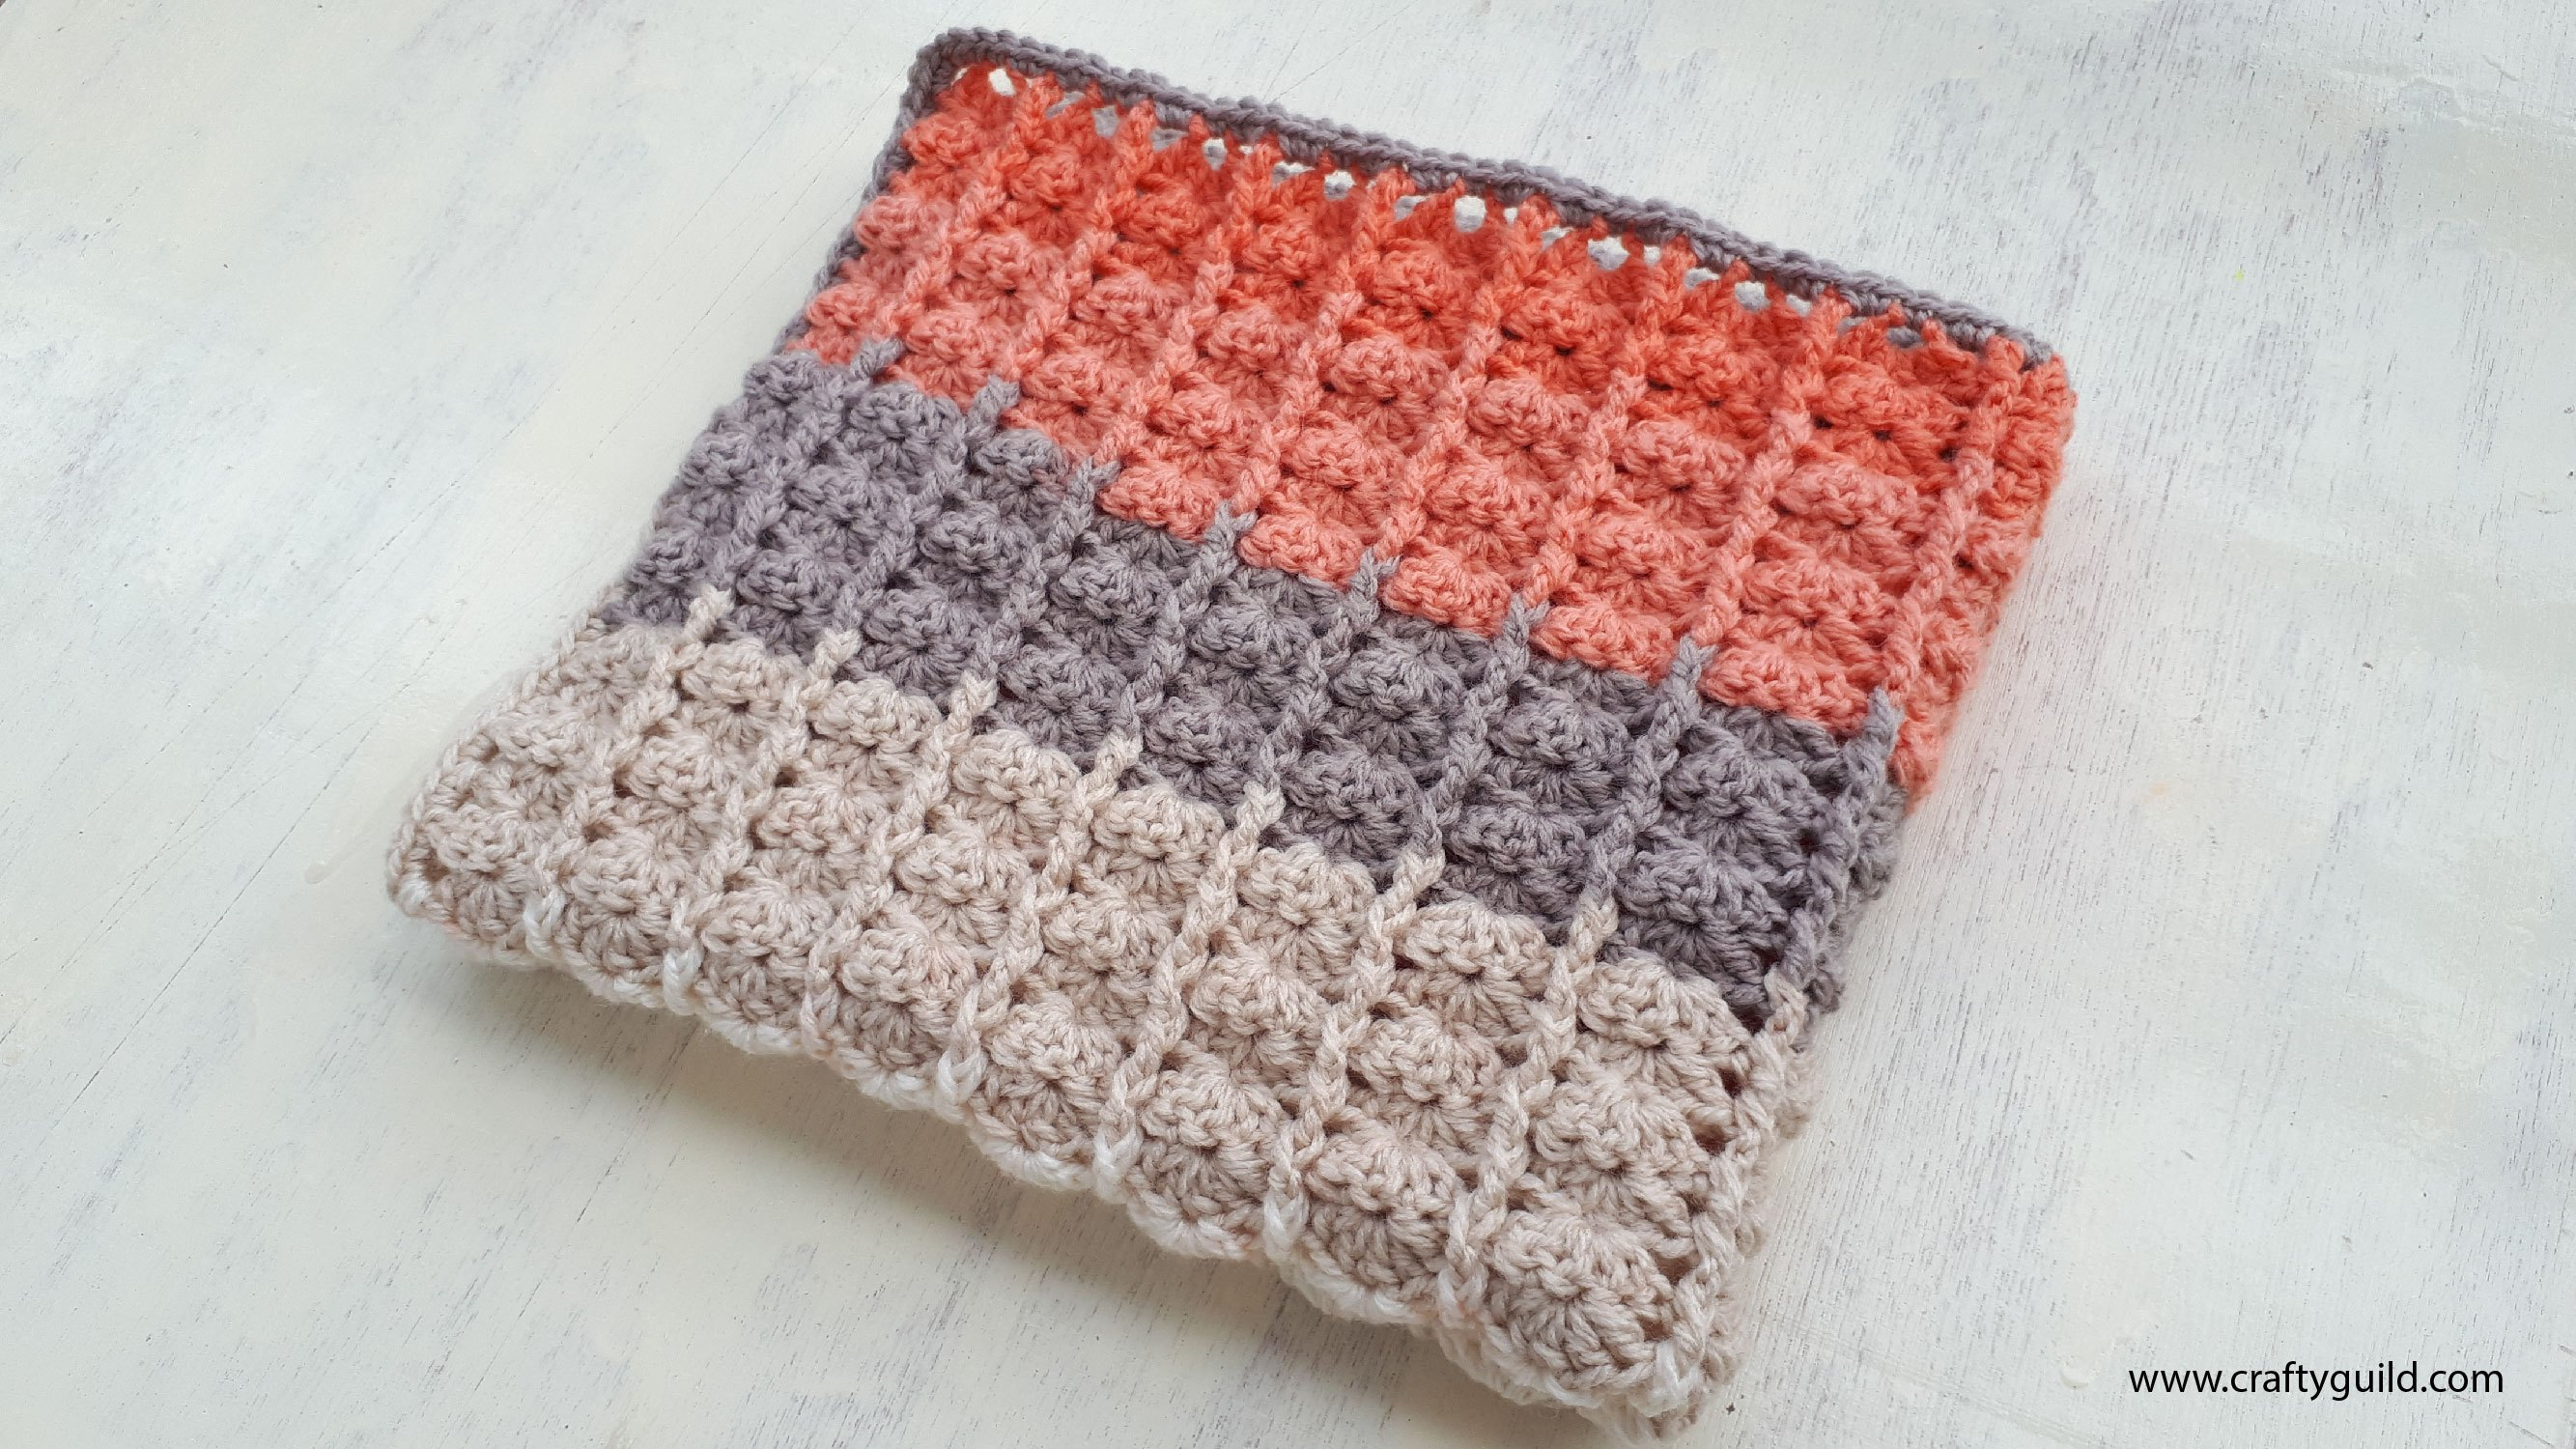 Crochet Patterns Galore - 1 BALL CARON CAKE BABY BLANKET